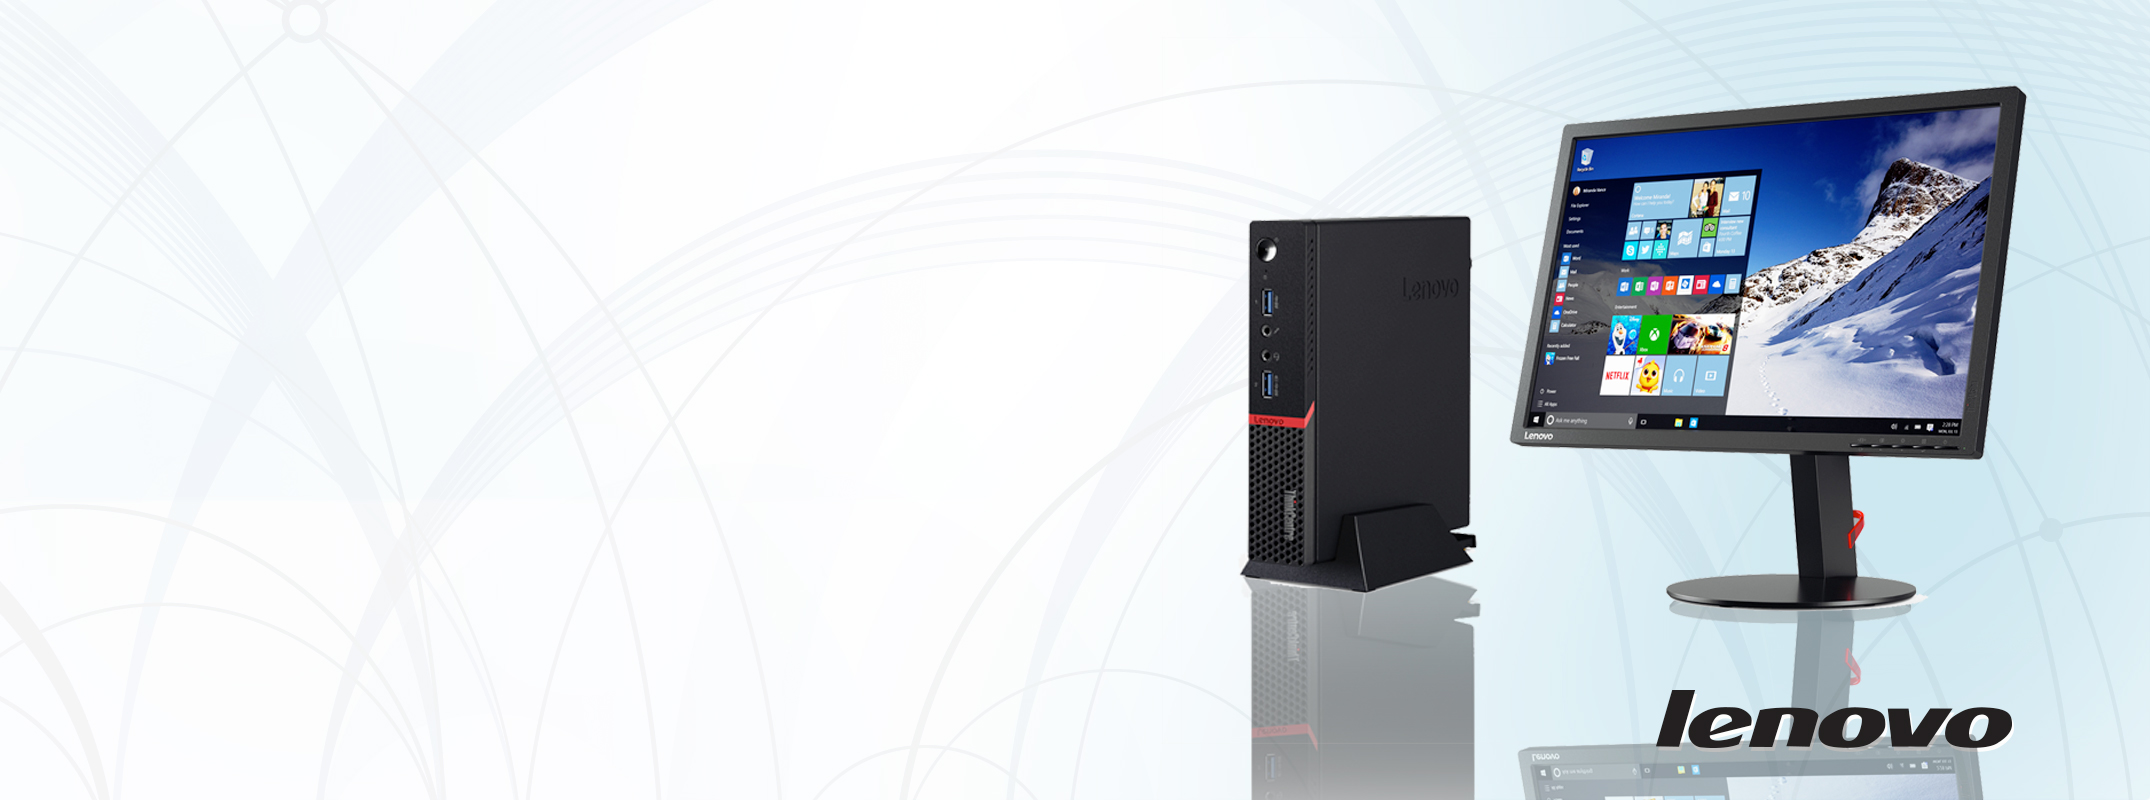 Extended Support for Lenovo Customers